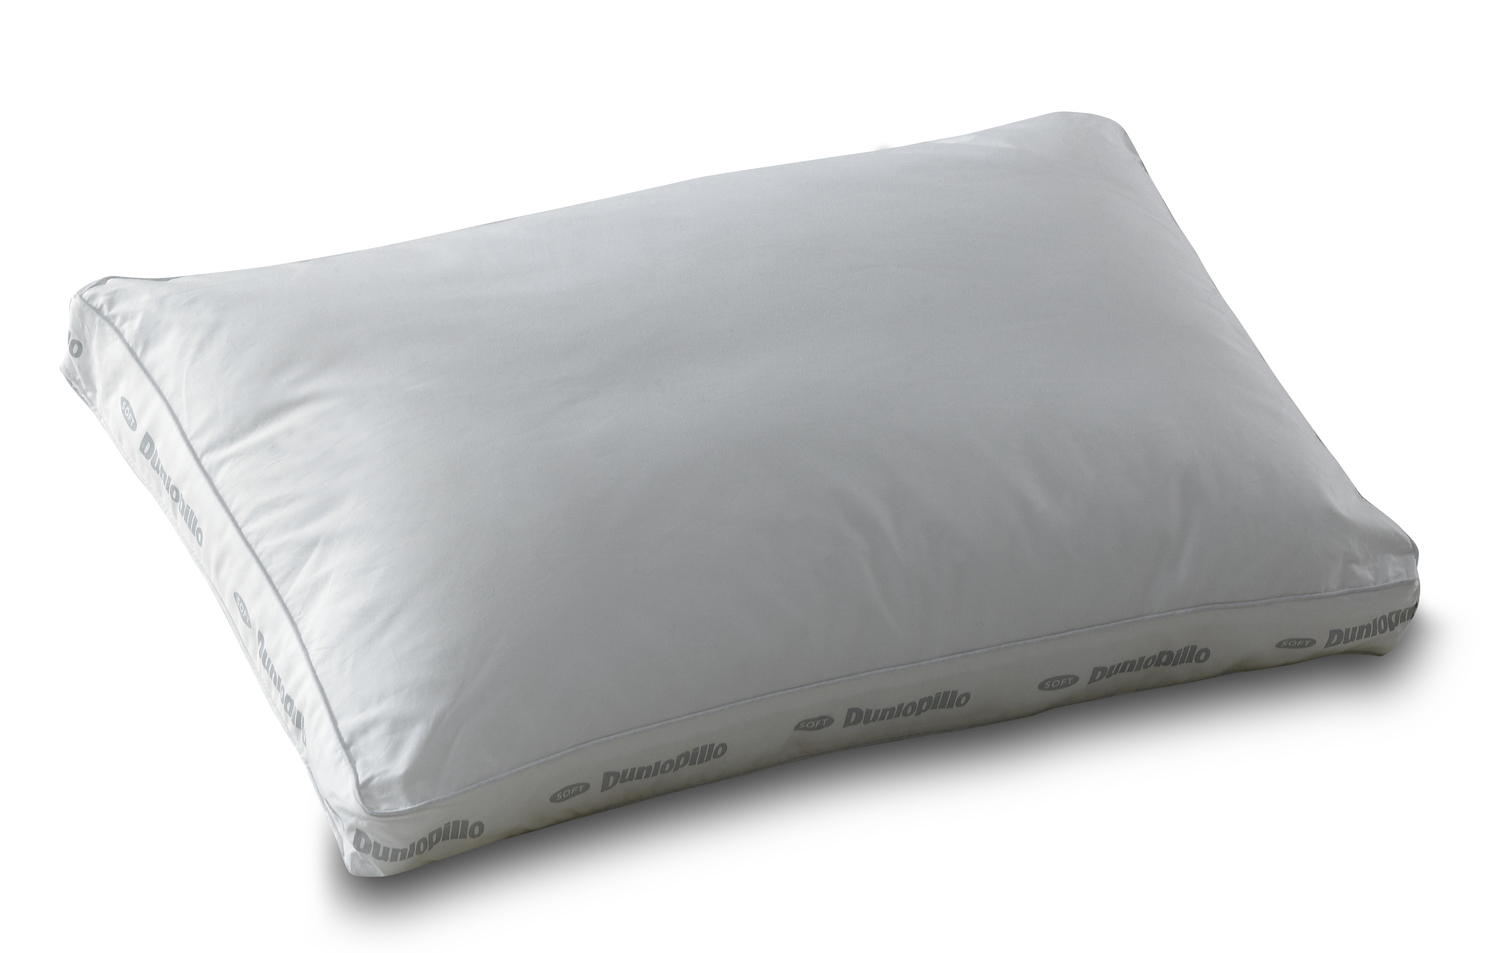 Dunlopillo Celeste Latex Layer Pillow Soft